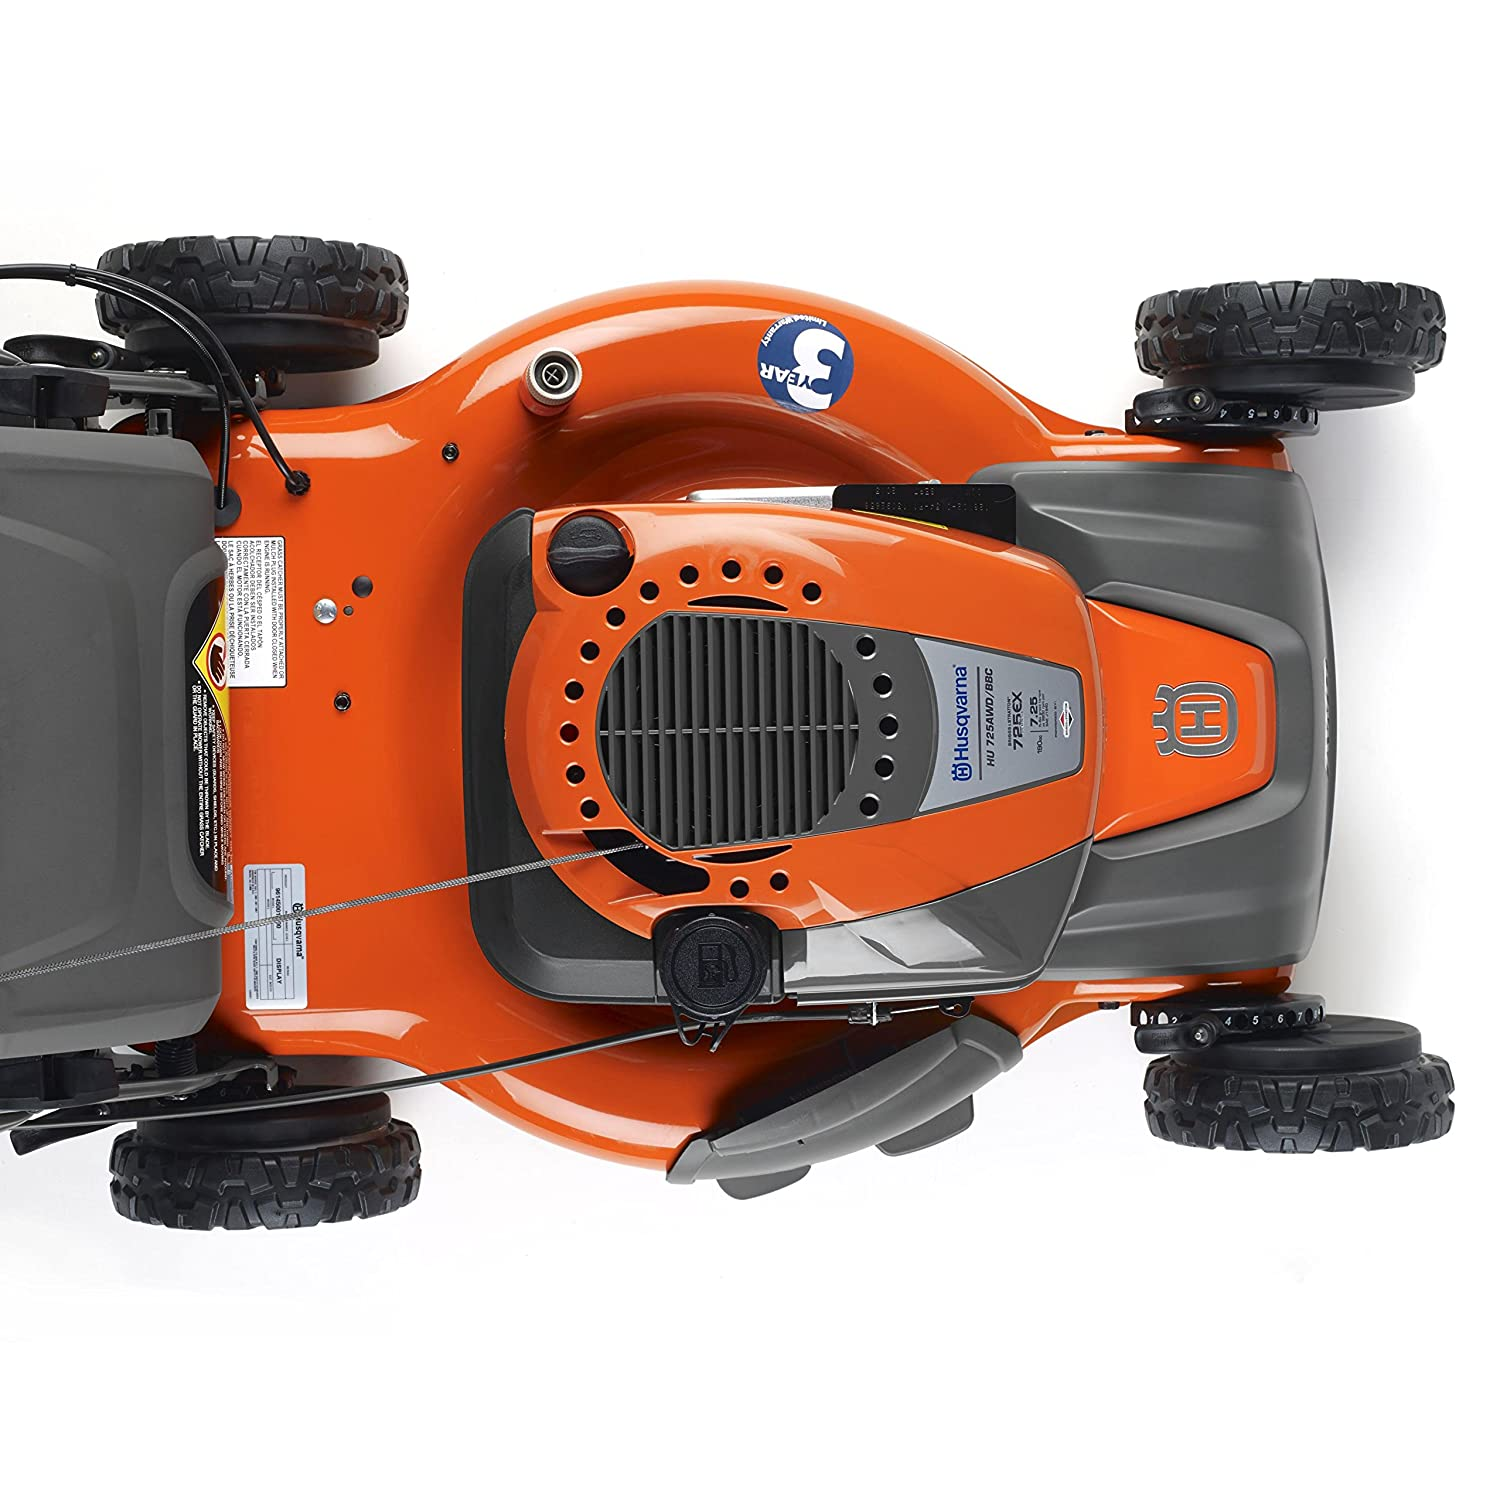 Husqvarna 961430103 HU725AWD 22-Inch 3-in-1 AWD Mower with Briggs &  Stratton 725ex Engine, CARB Compliant